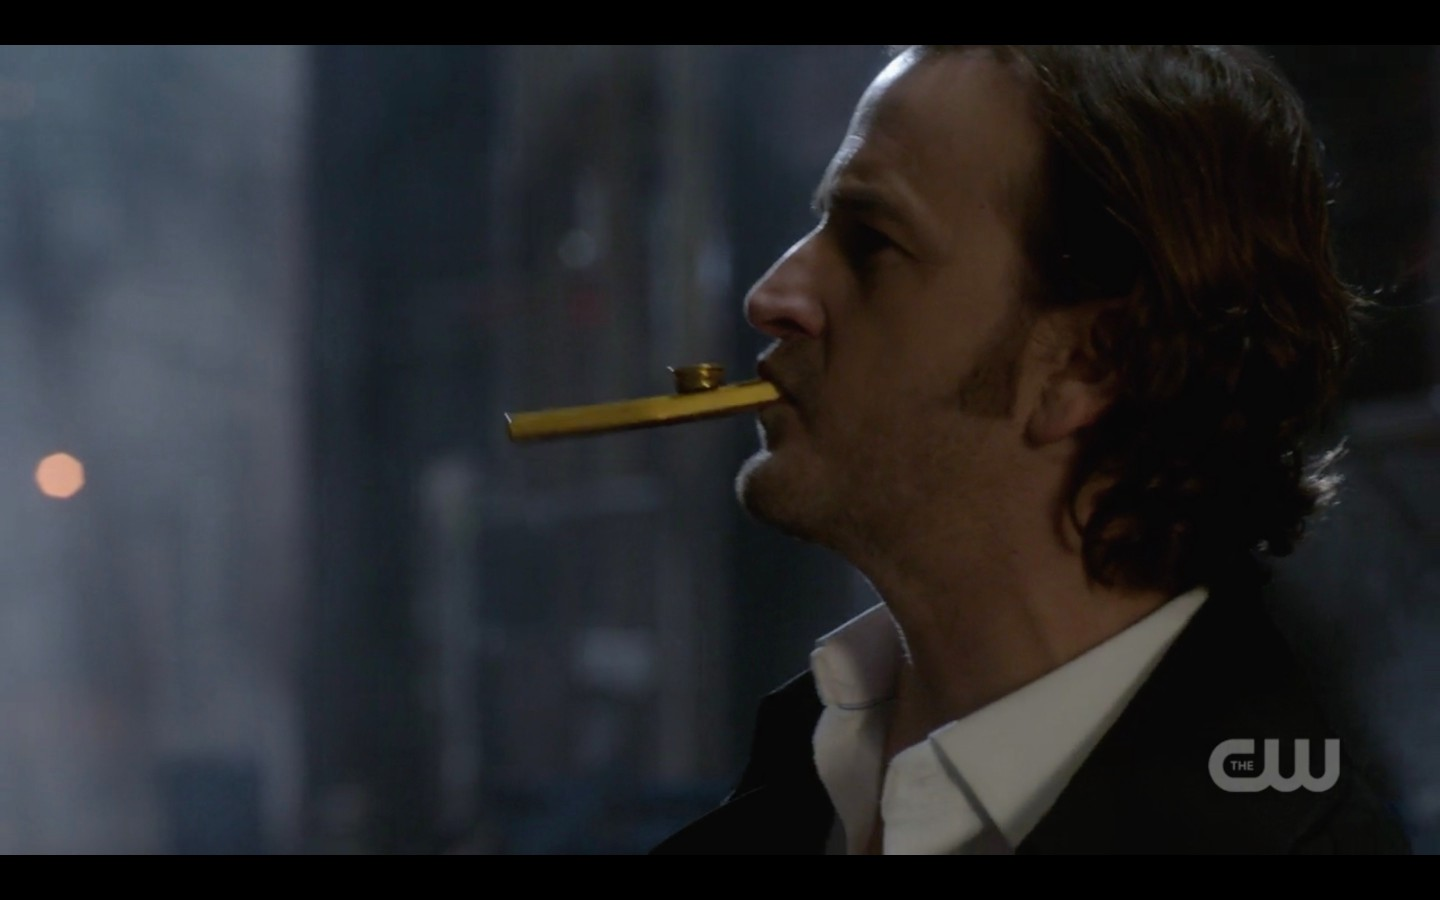 supernatural gabriel lights up cigar 1320